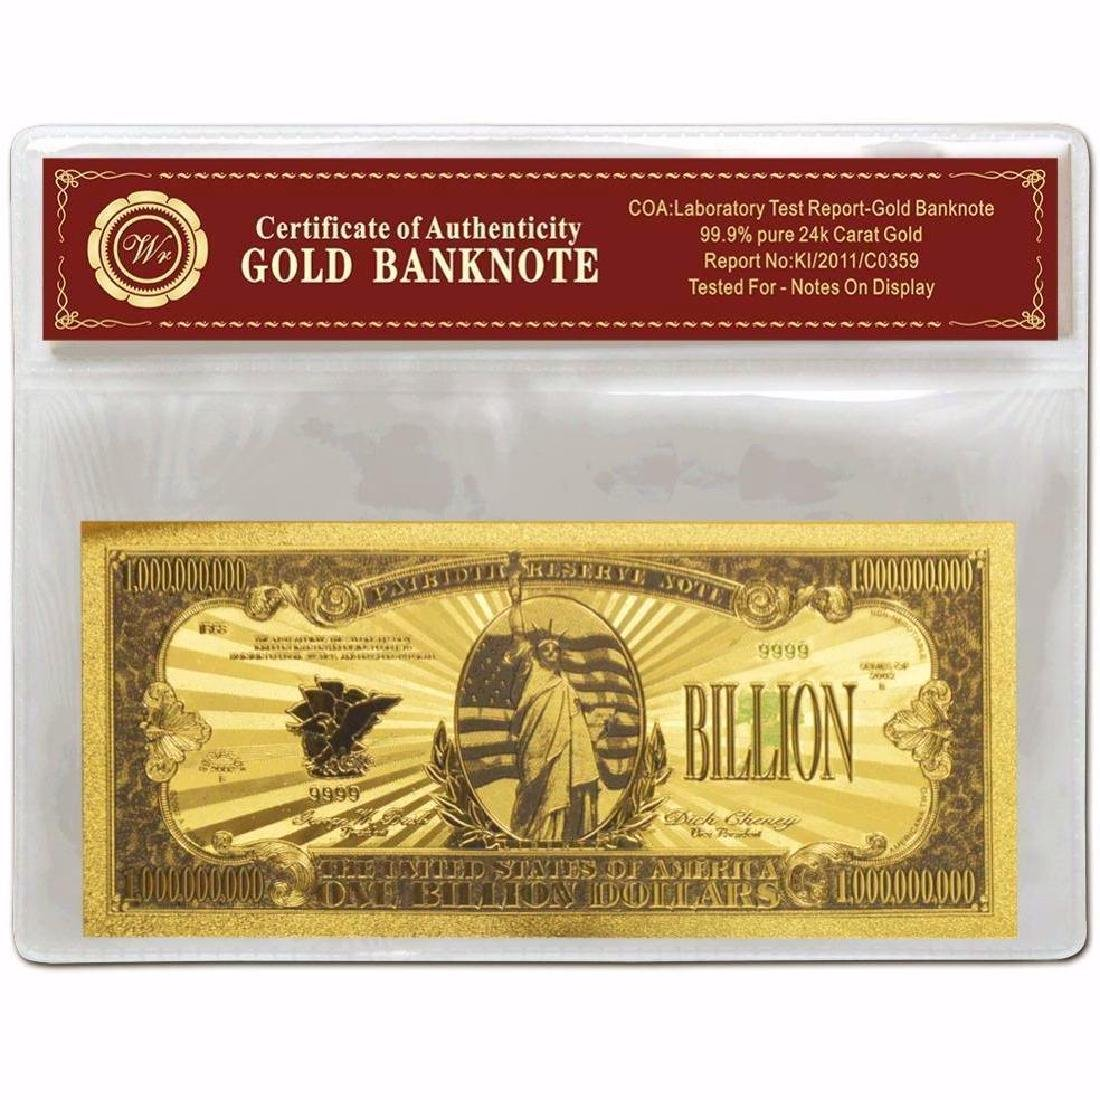 USA $1,000,000,000 24K Gold Clad Banknote